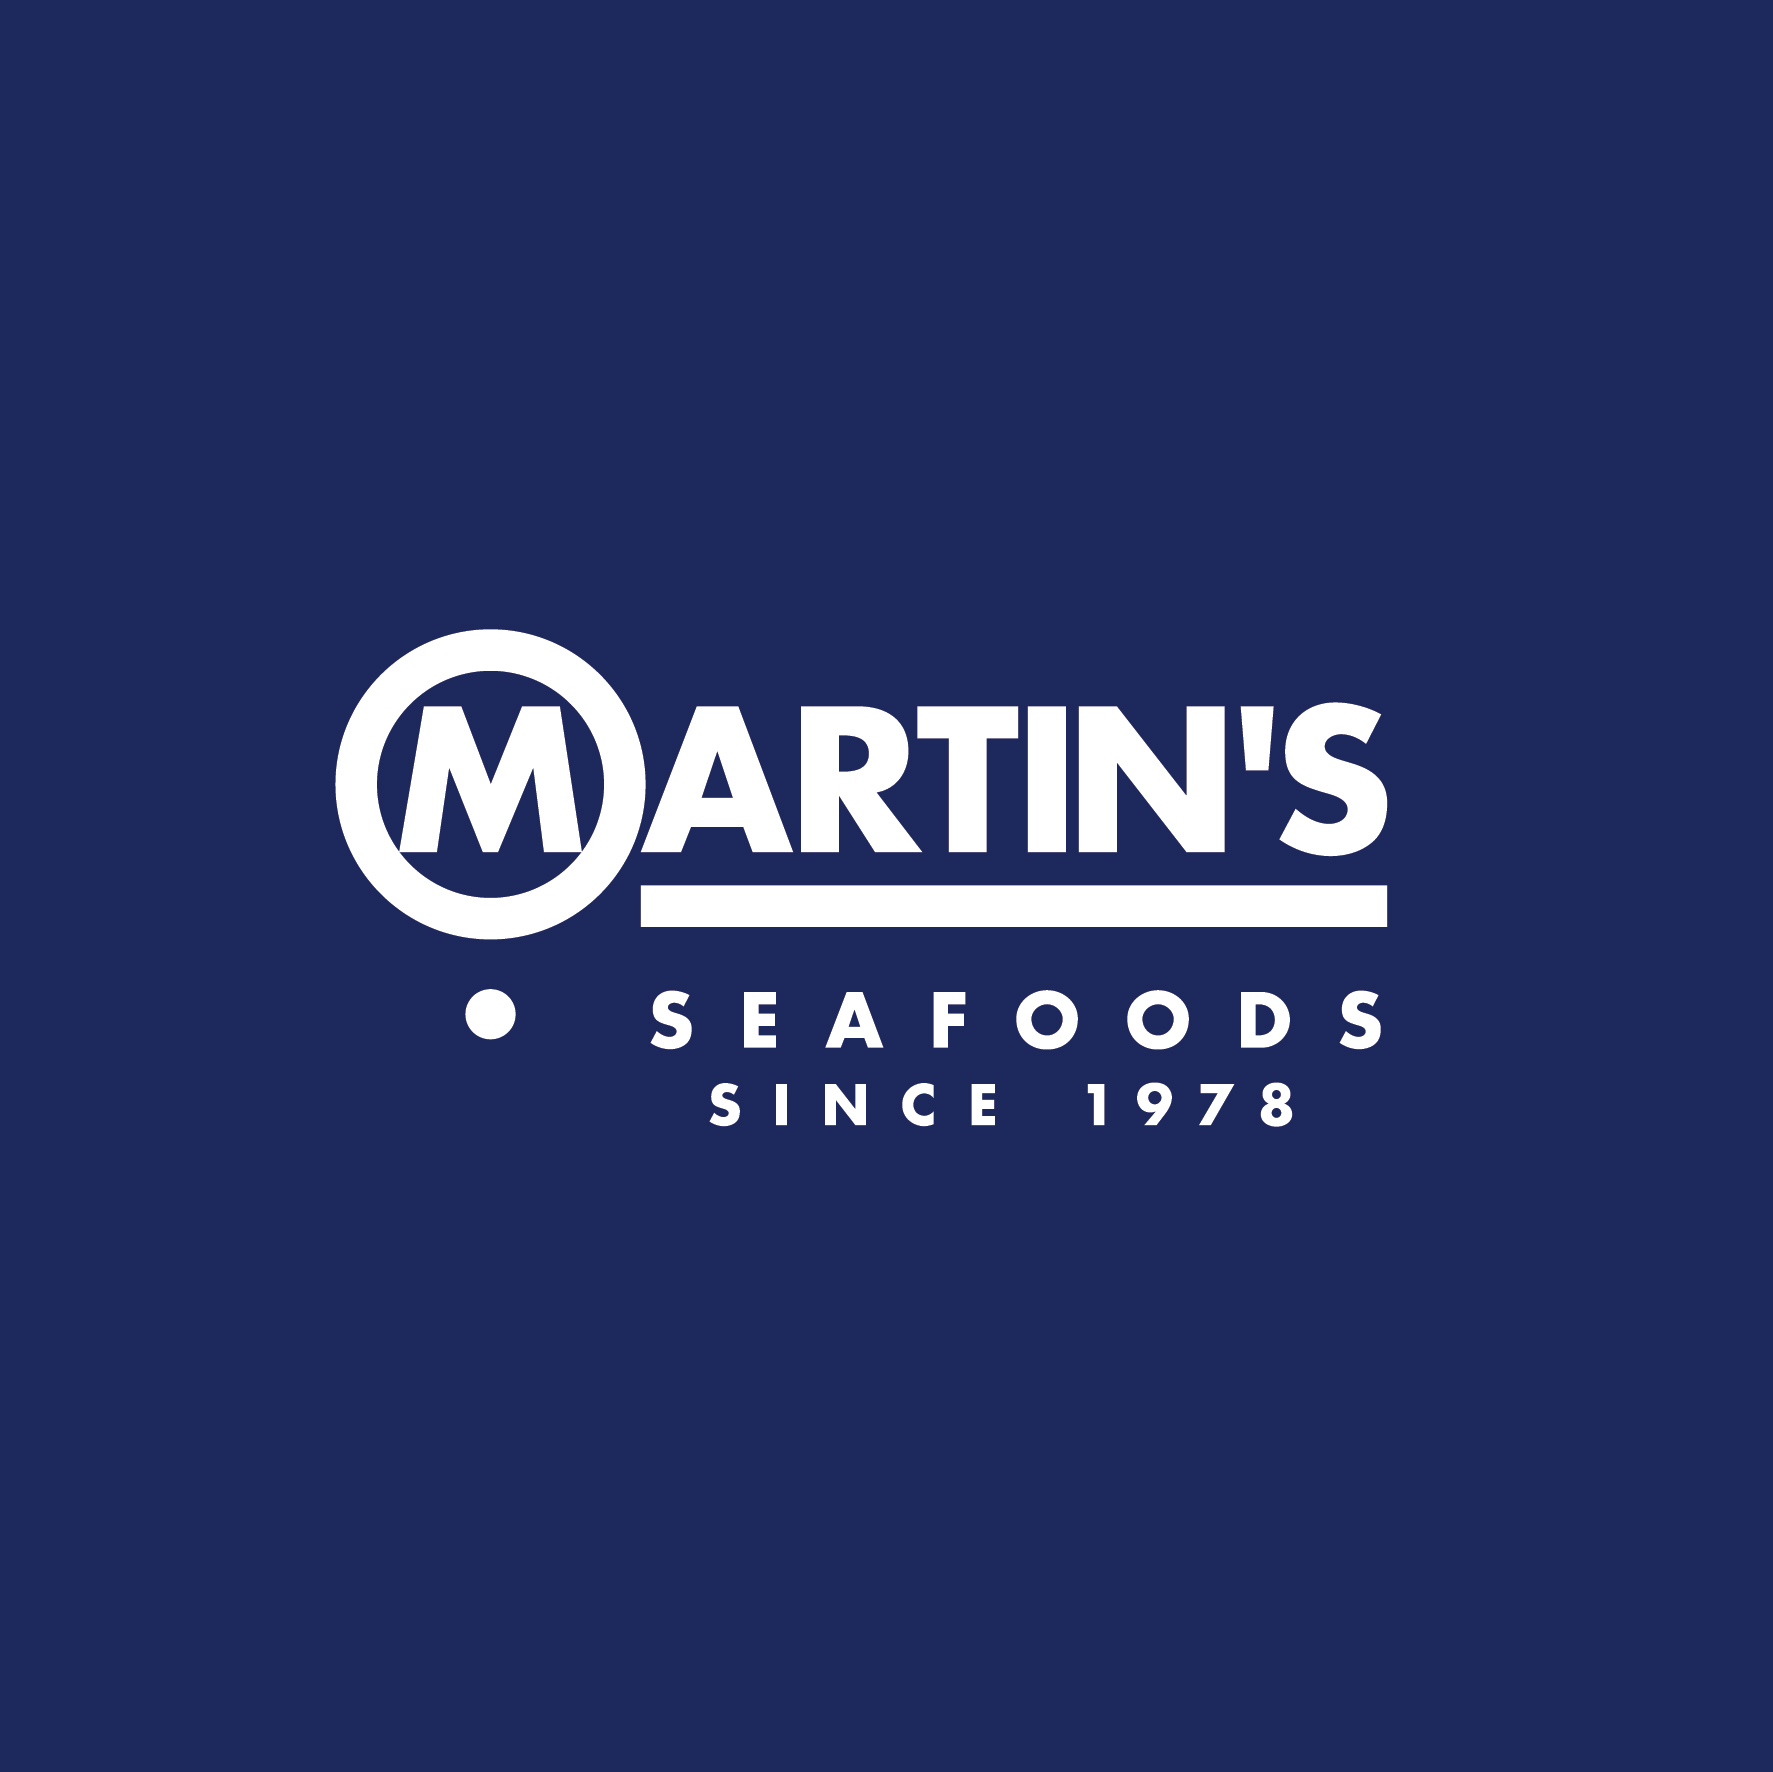 MARTIN'S SEAFOODS